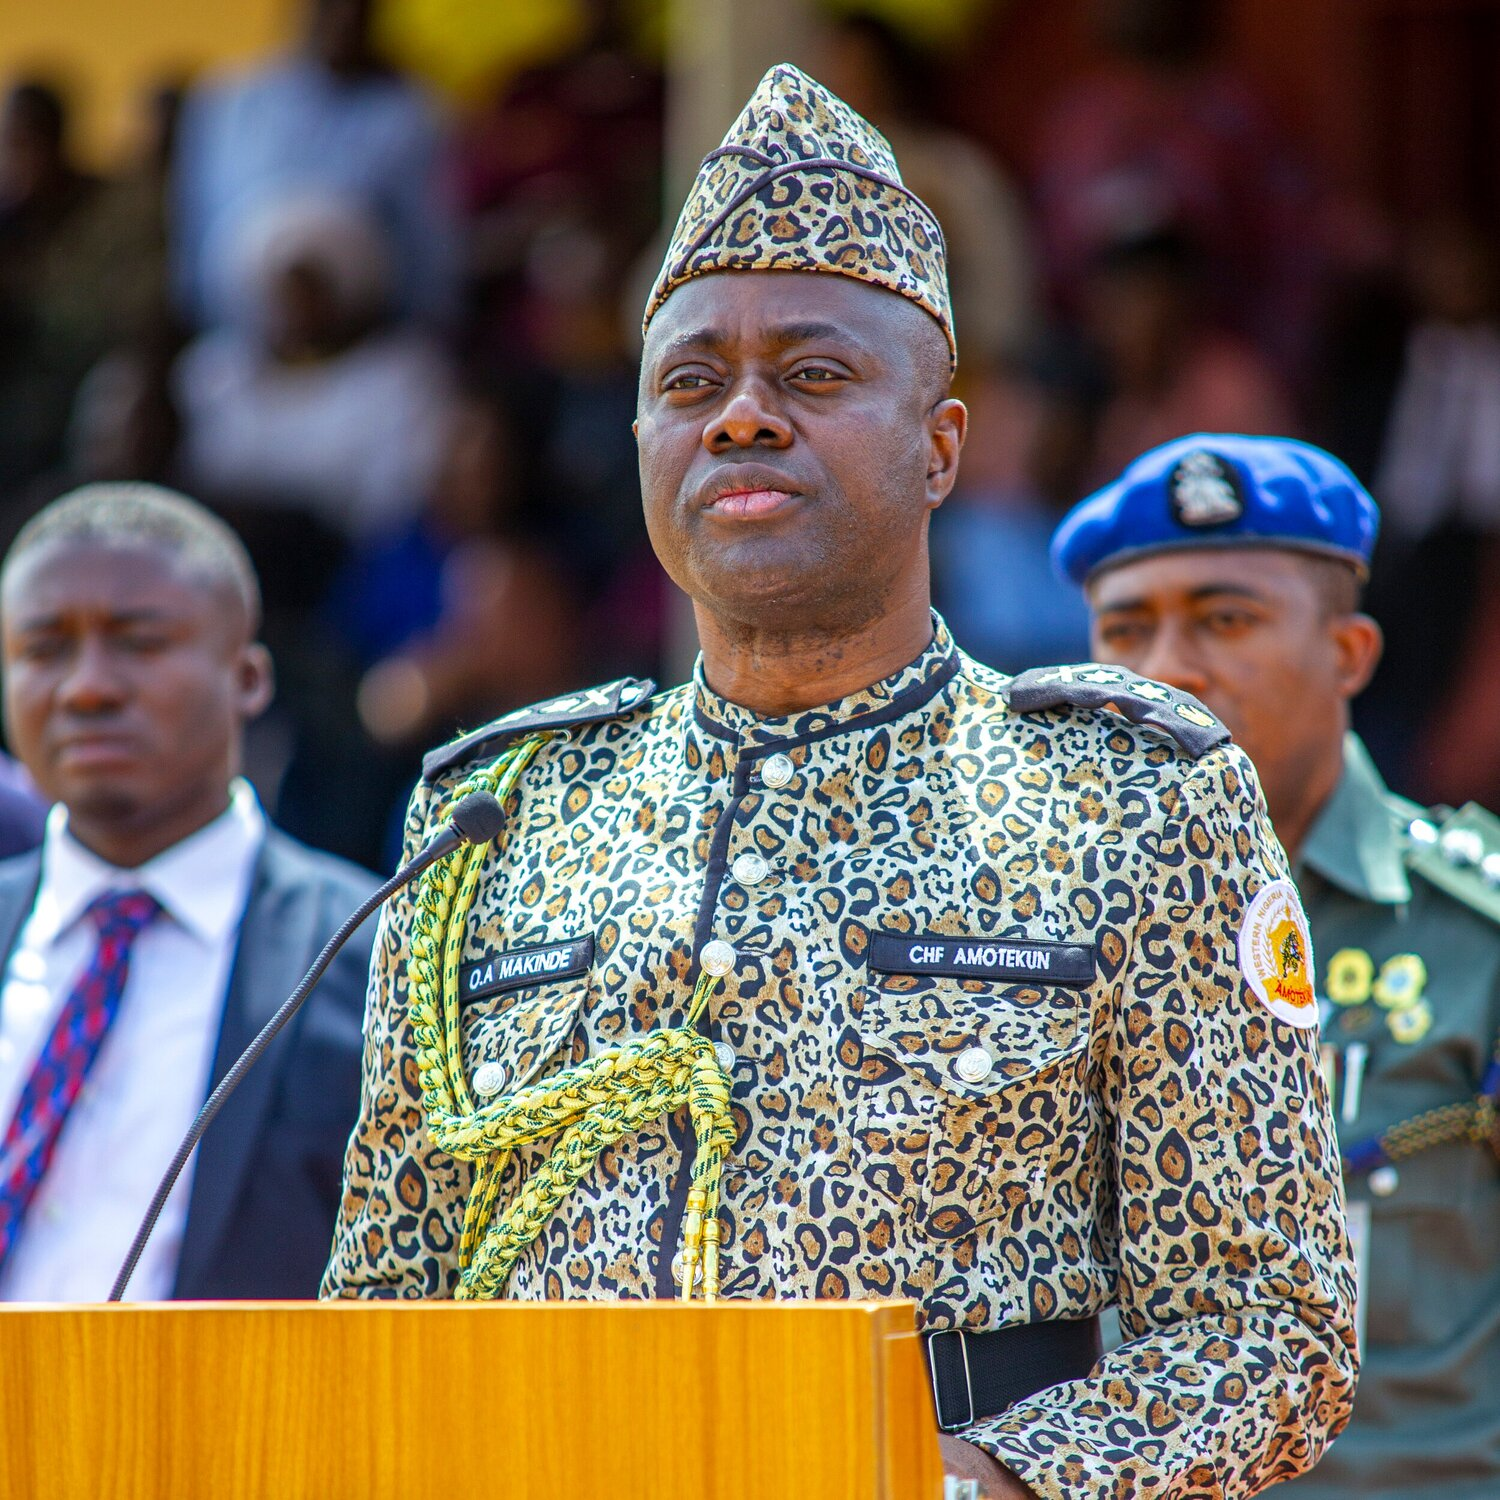 Governor Seyi Makinde's Speech at the Passing Out Parade of the Oyo State Security Network Agency codenamed Amotekun